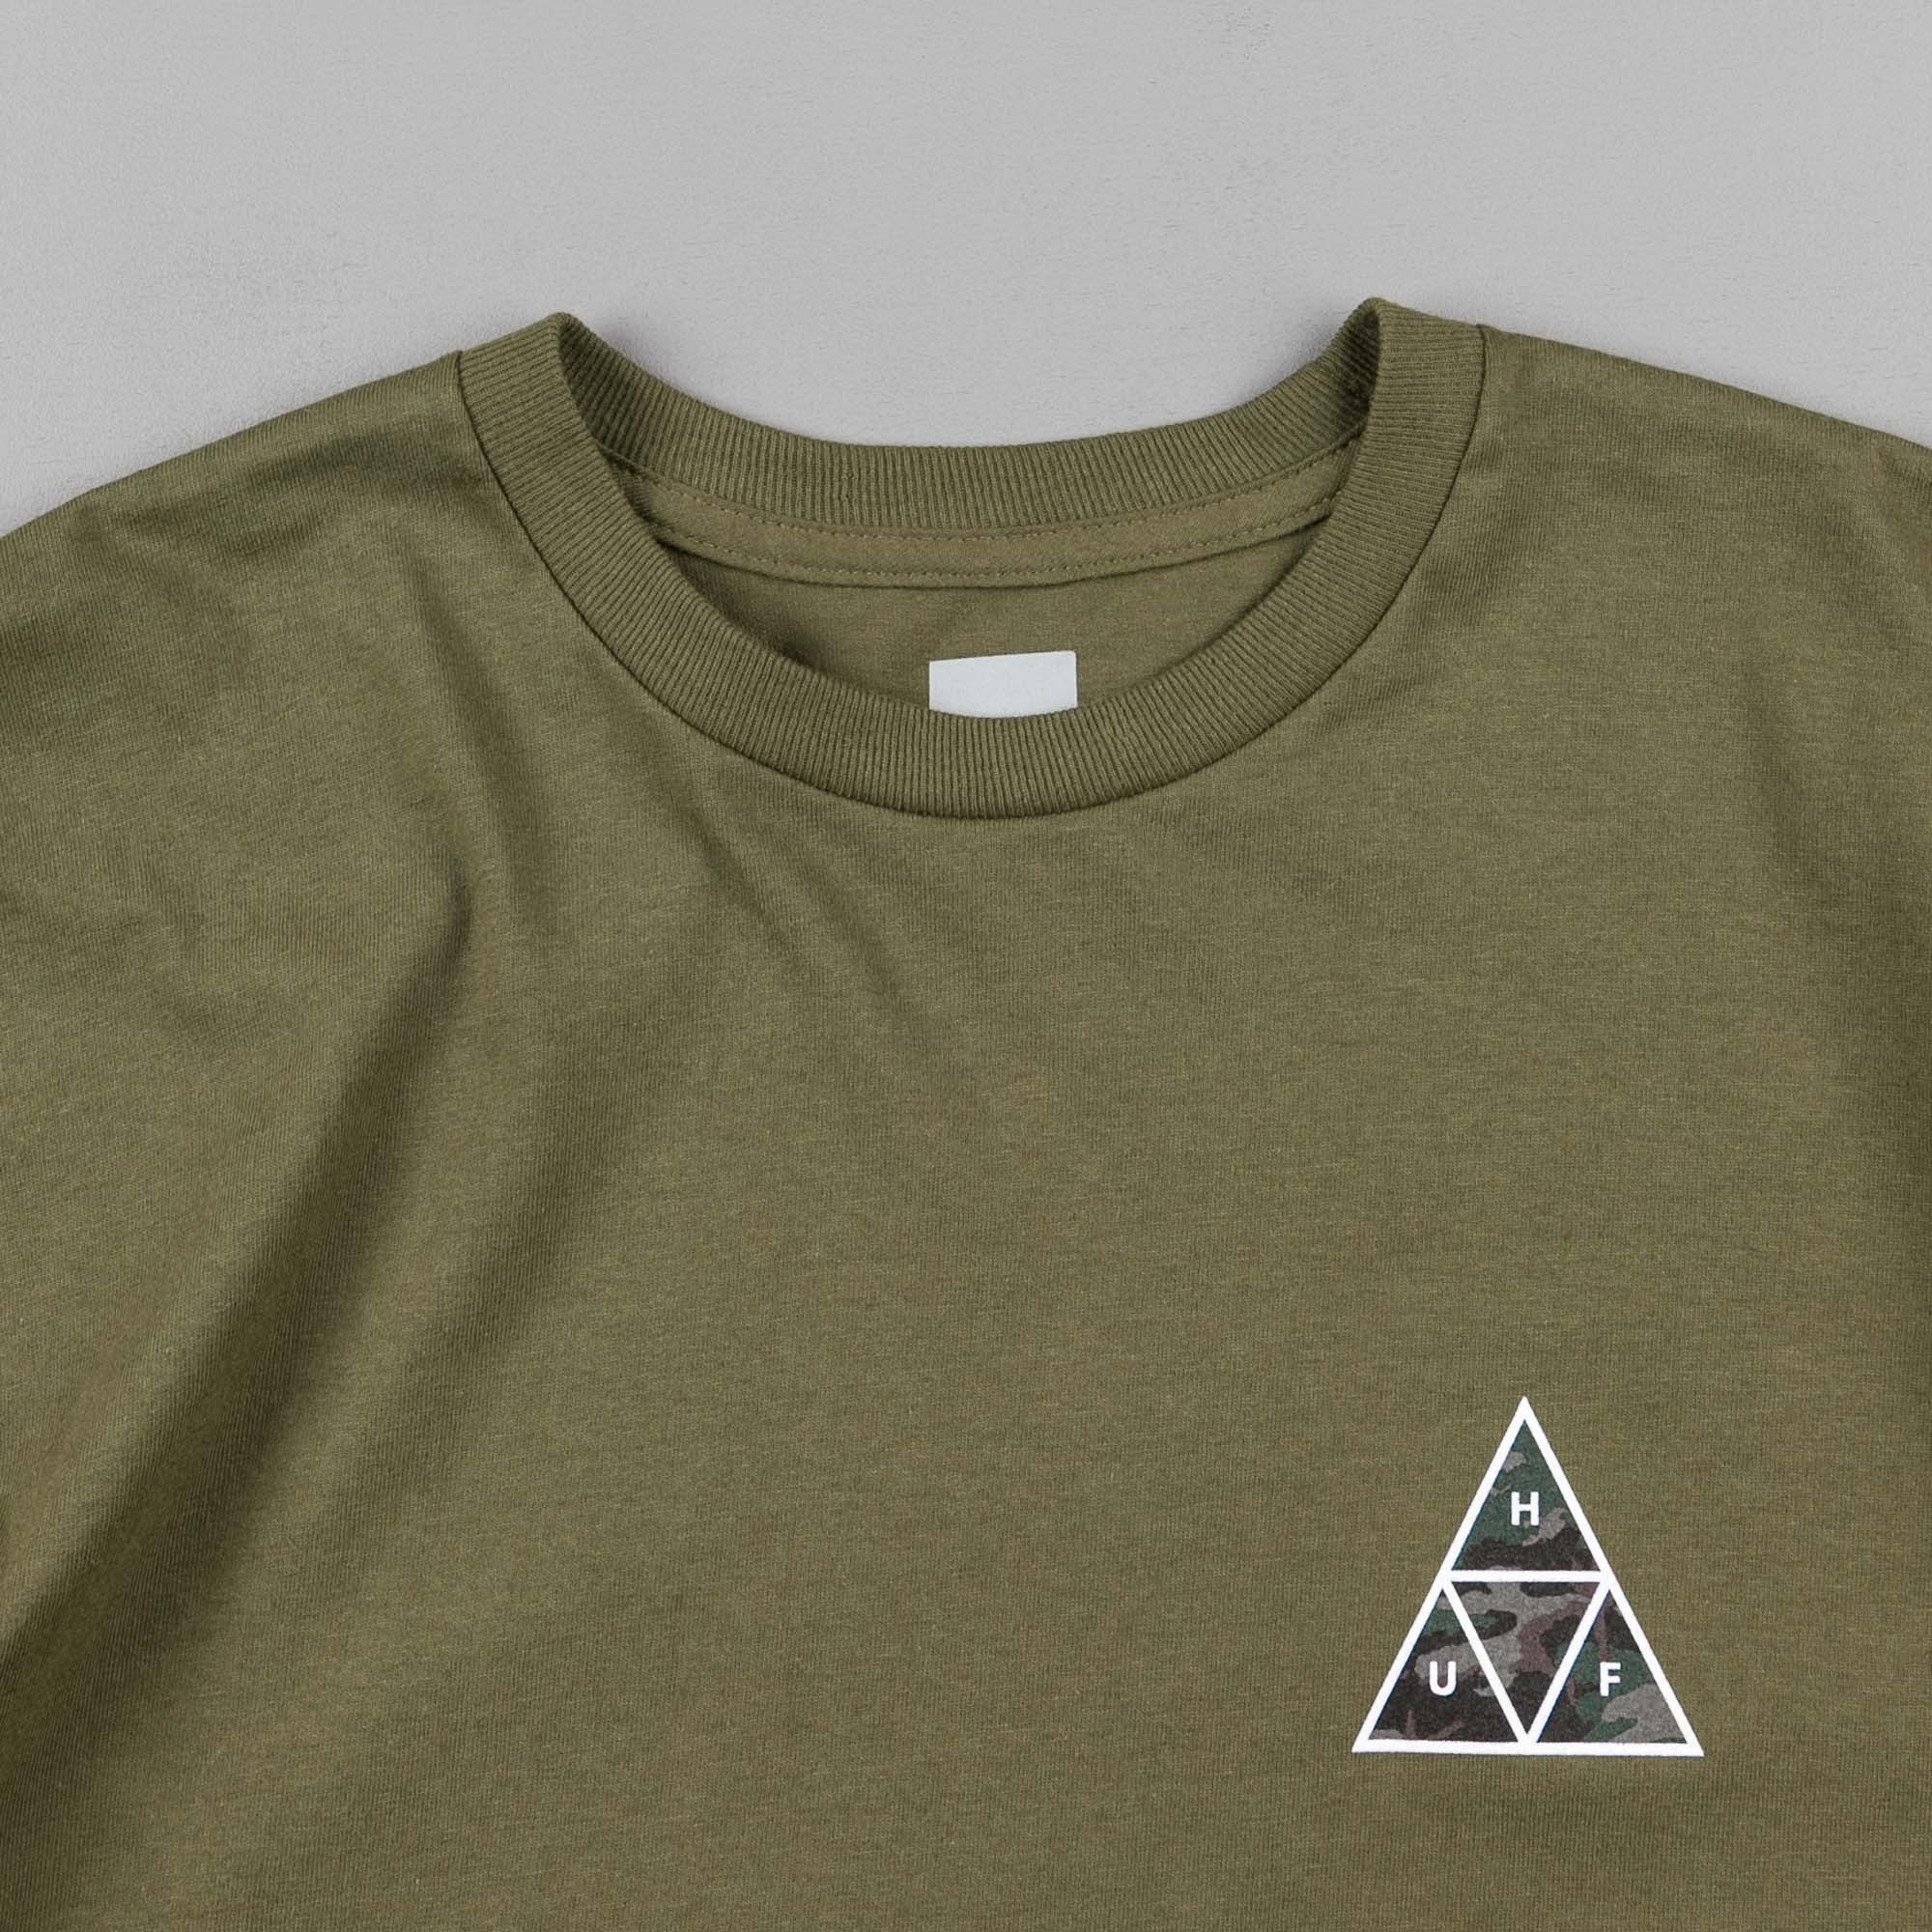 HUF Muted Military Triple Triangle T-Shirt - Military